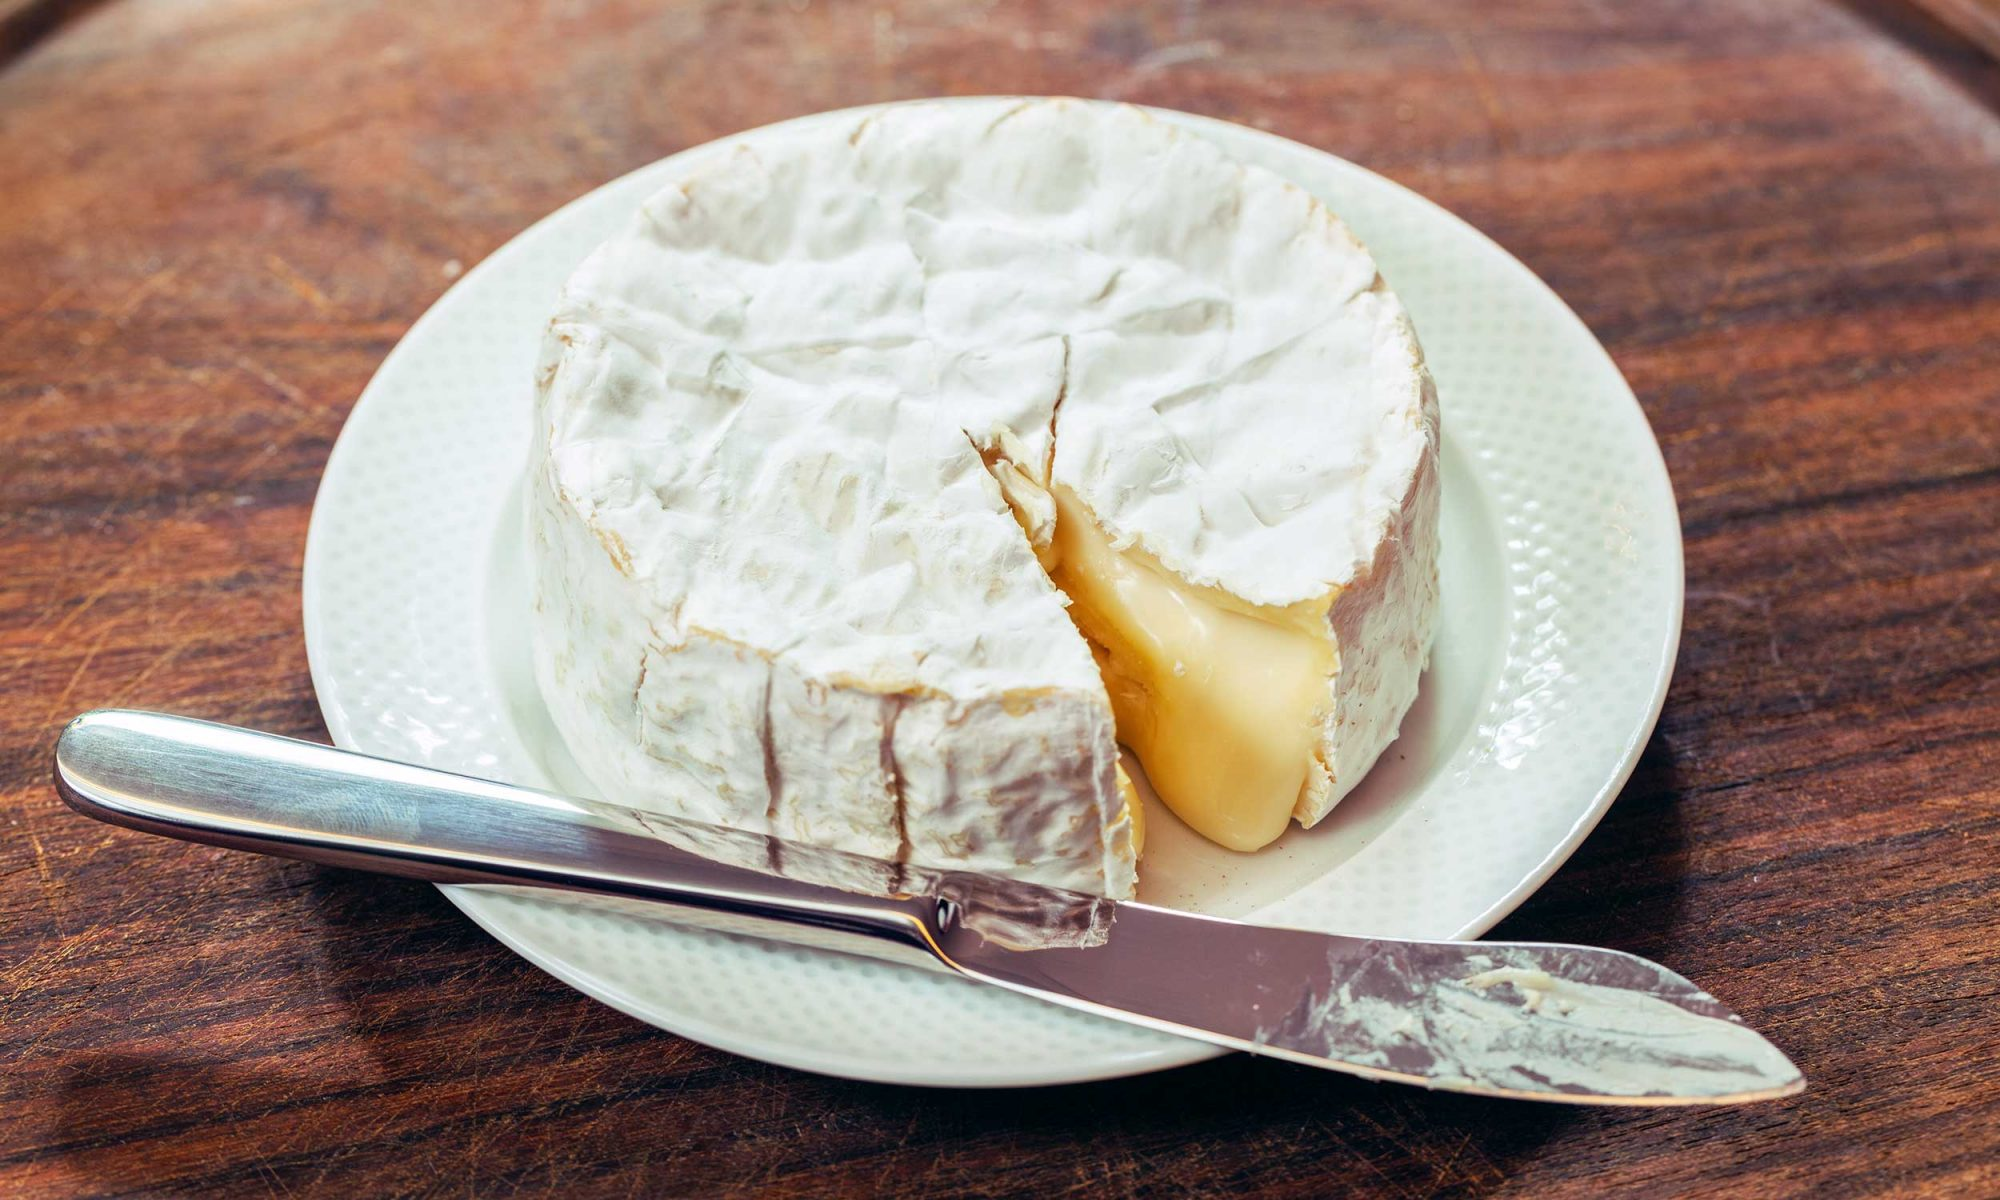 EC: China Bans Soft Cheeses from Europe, But Chinese Soft Cheeses Are OK